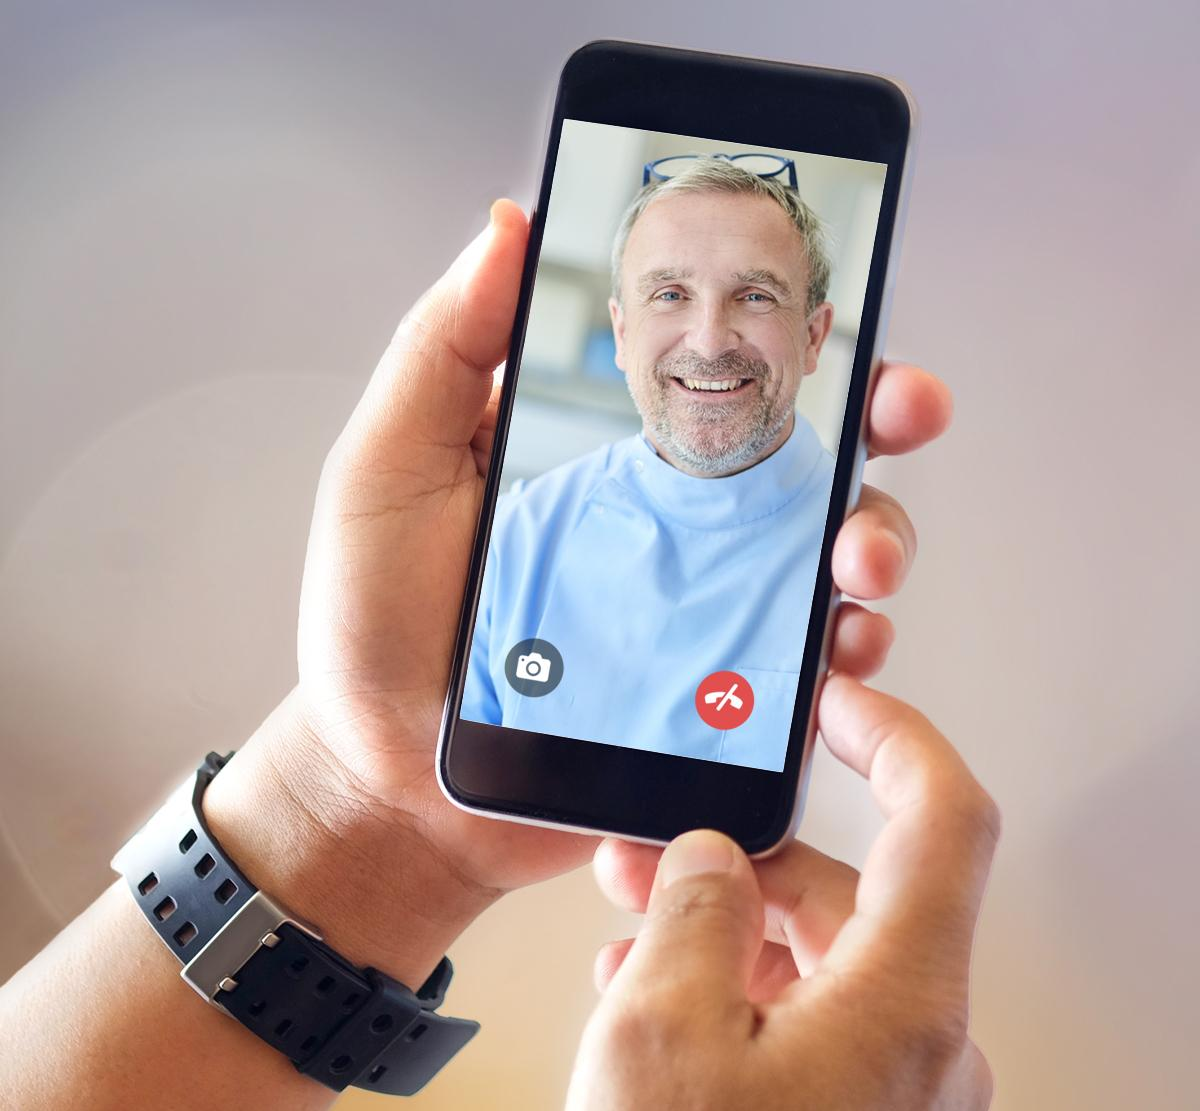 Video call with dentist